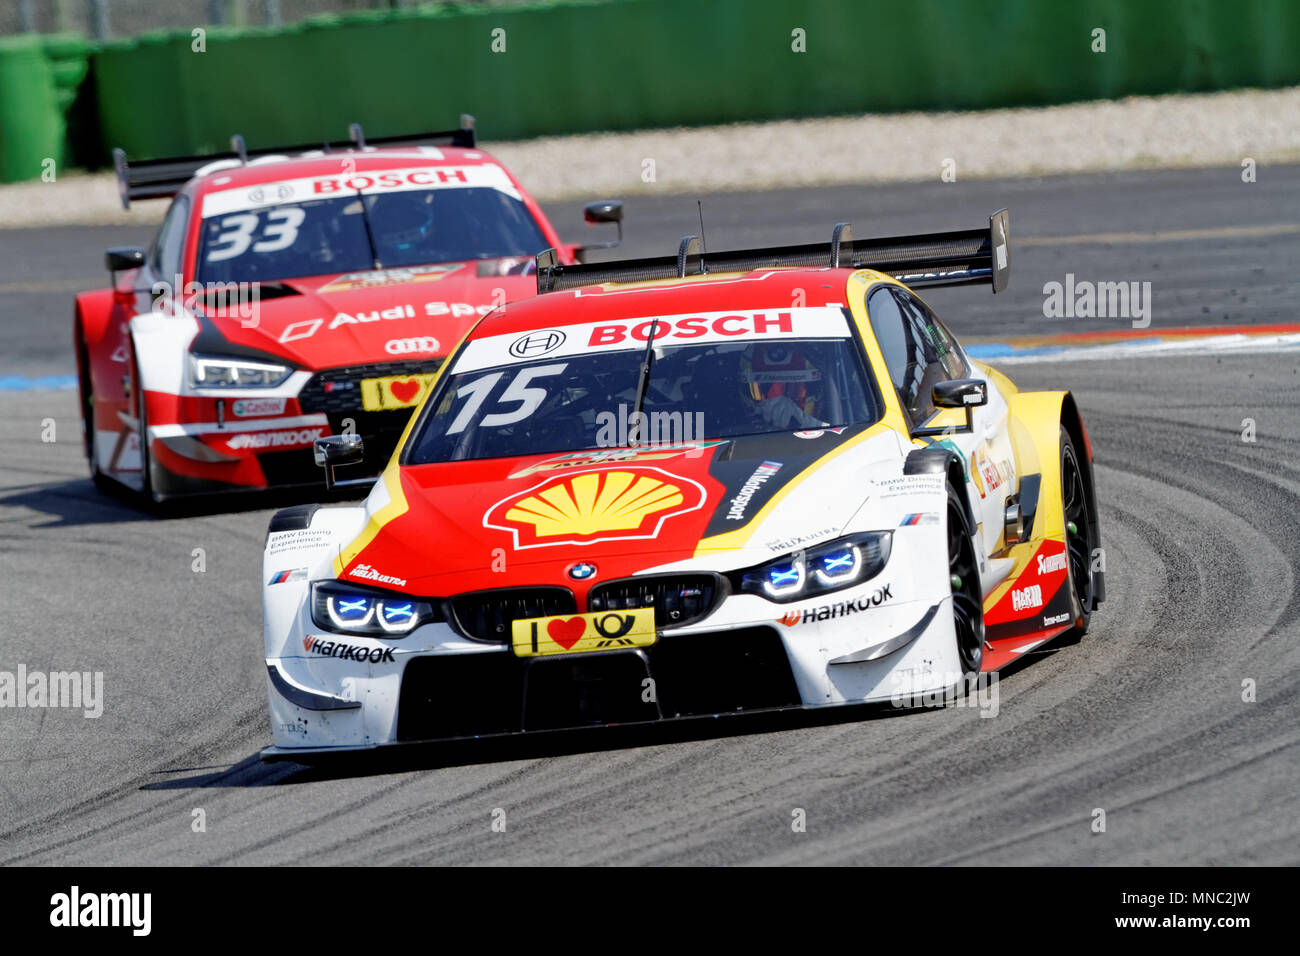 augusto farfus bra bmw dtm 2018 rennen 1 hockenheim. Black Bedroom Furniture Sets. Home Design Ideas